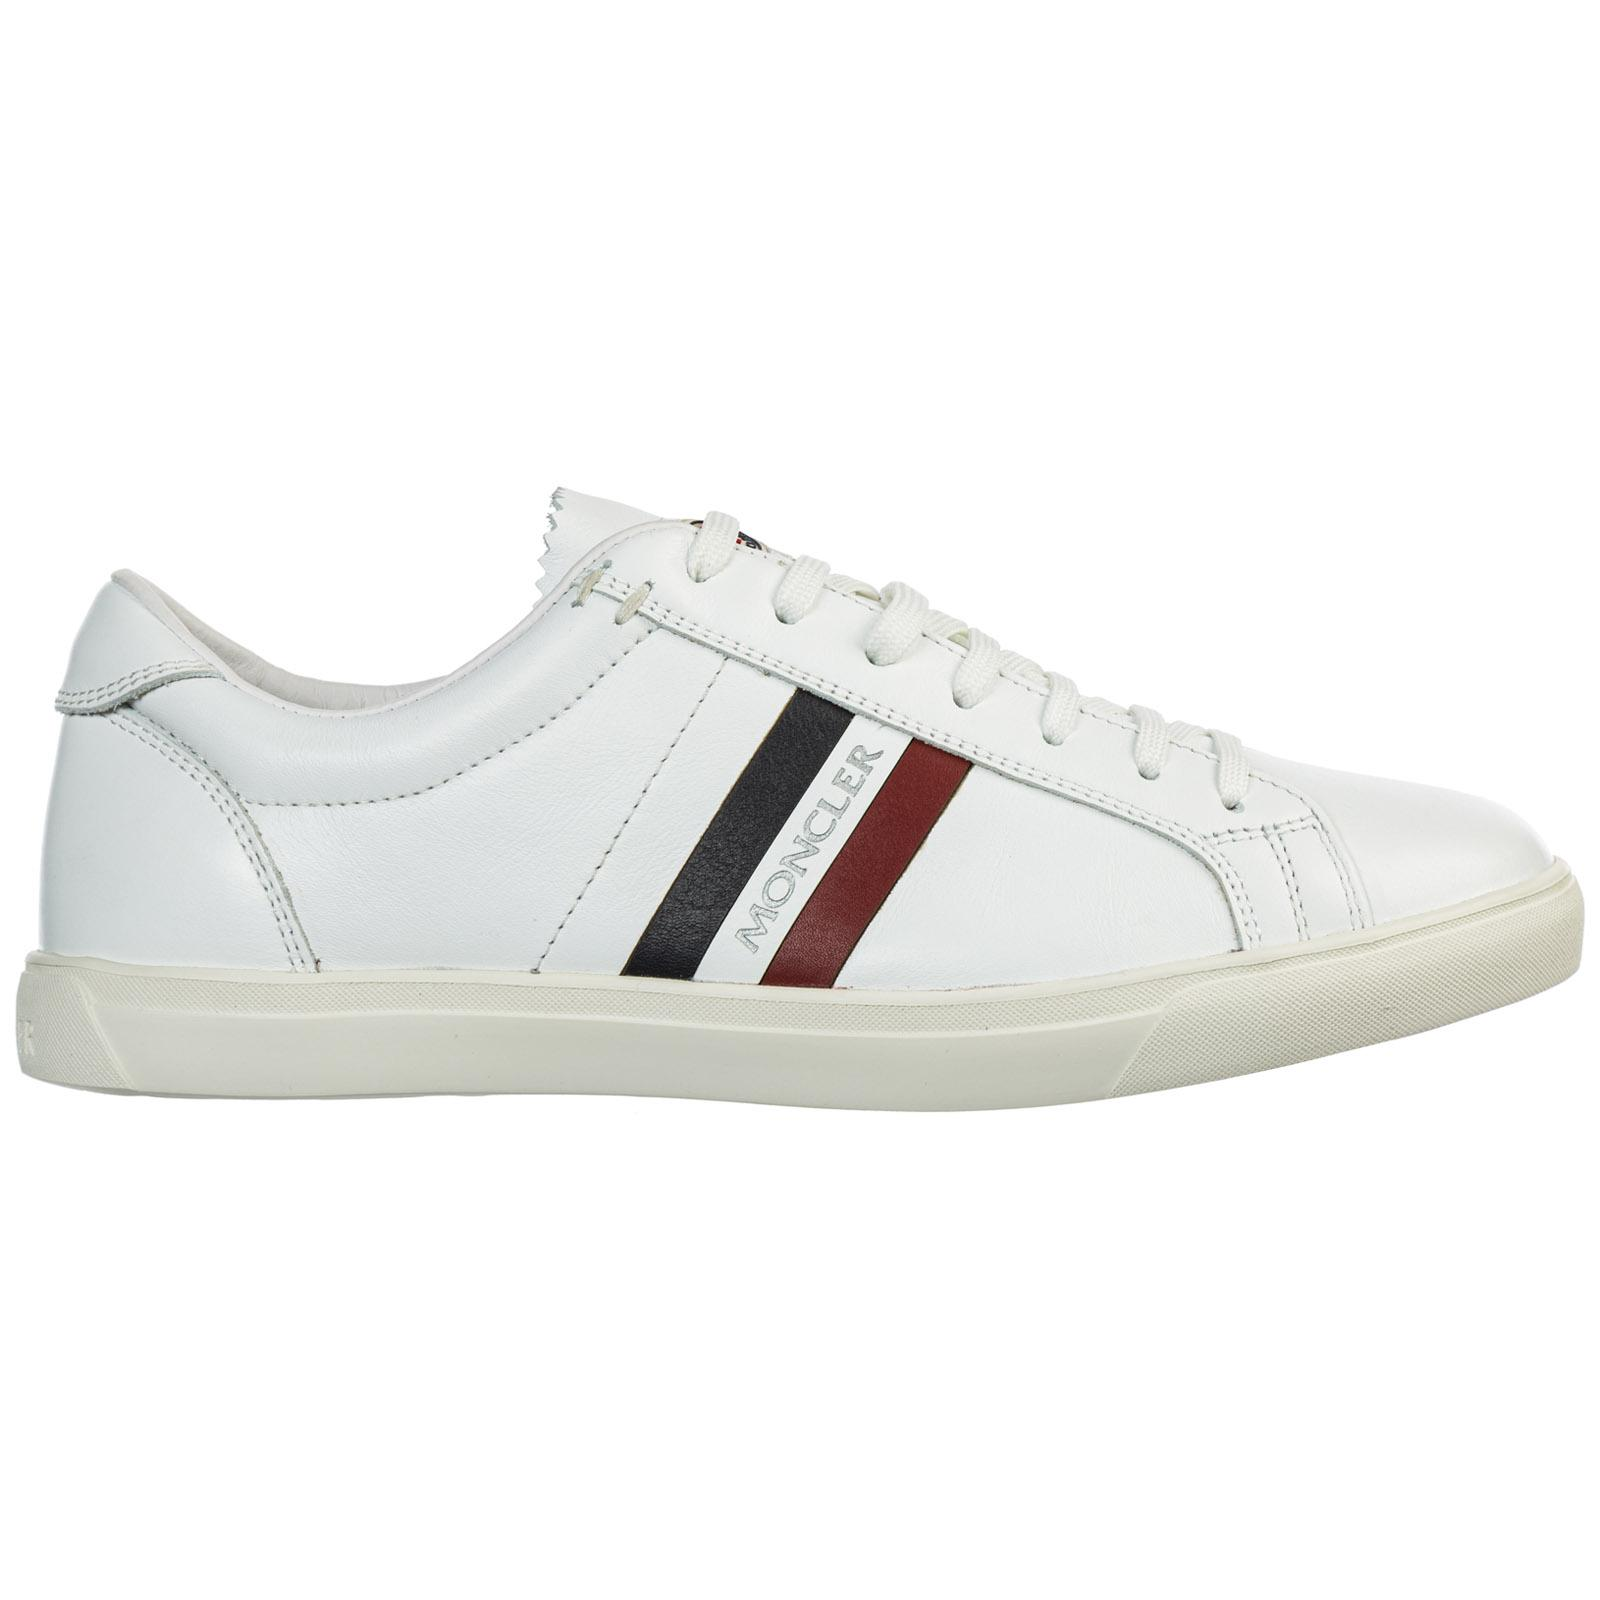 Moncler Men's Shoes Leather Trainers